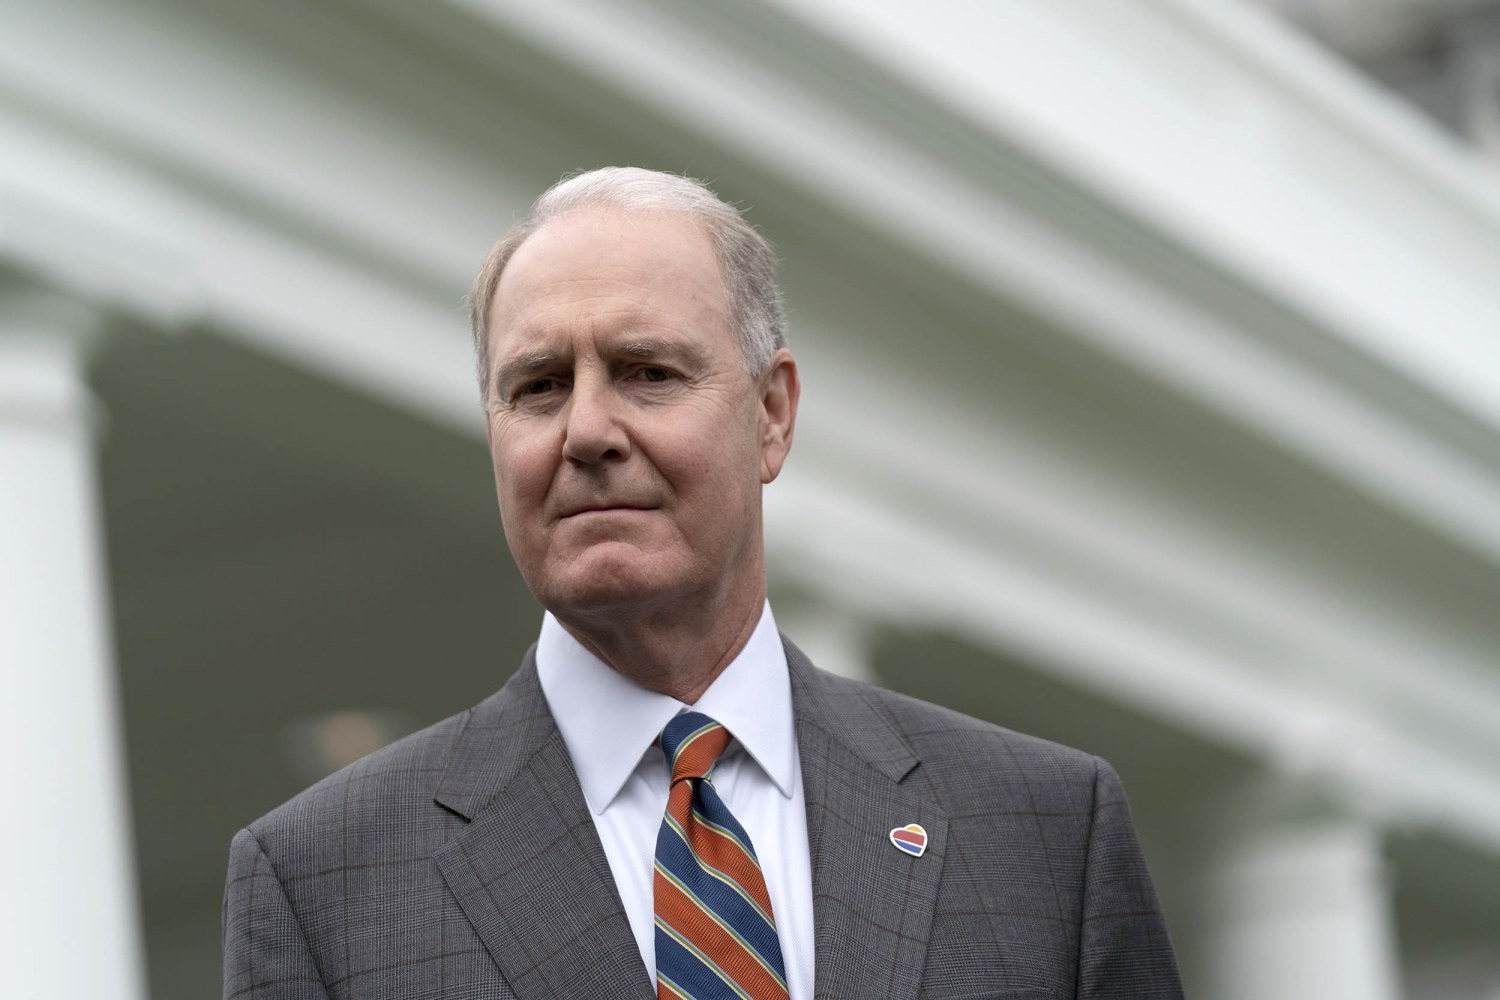 Southwest CEO Gary Kelly to step down